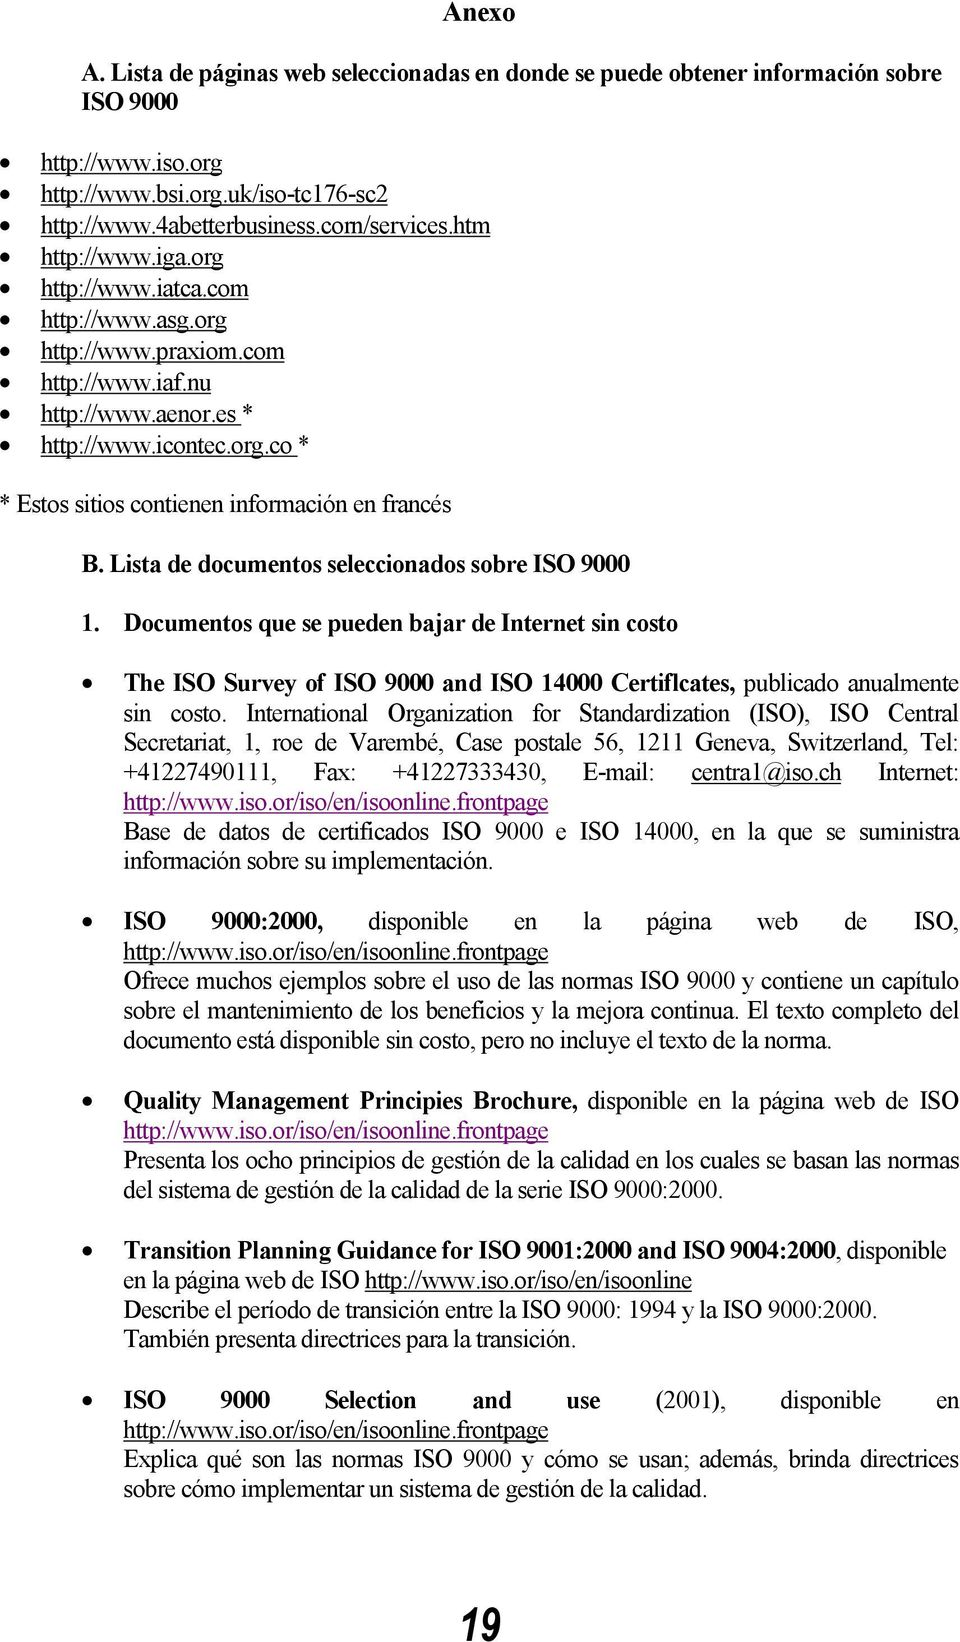 Lista de documentos seleccionados sobre ISO 9000 1. Documentos que se pueden bajar de Internet sin costo The ISO Survey of ISO 9000 and ISO 14000 Certiflcates, publicado anualmente sin costo.